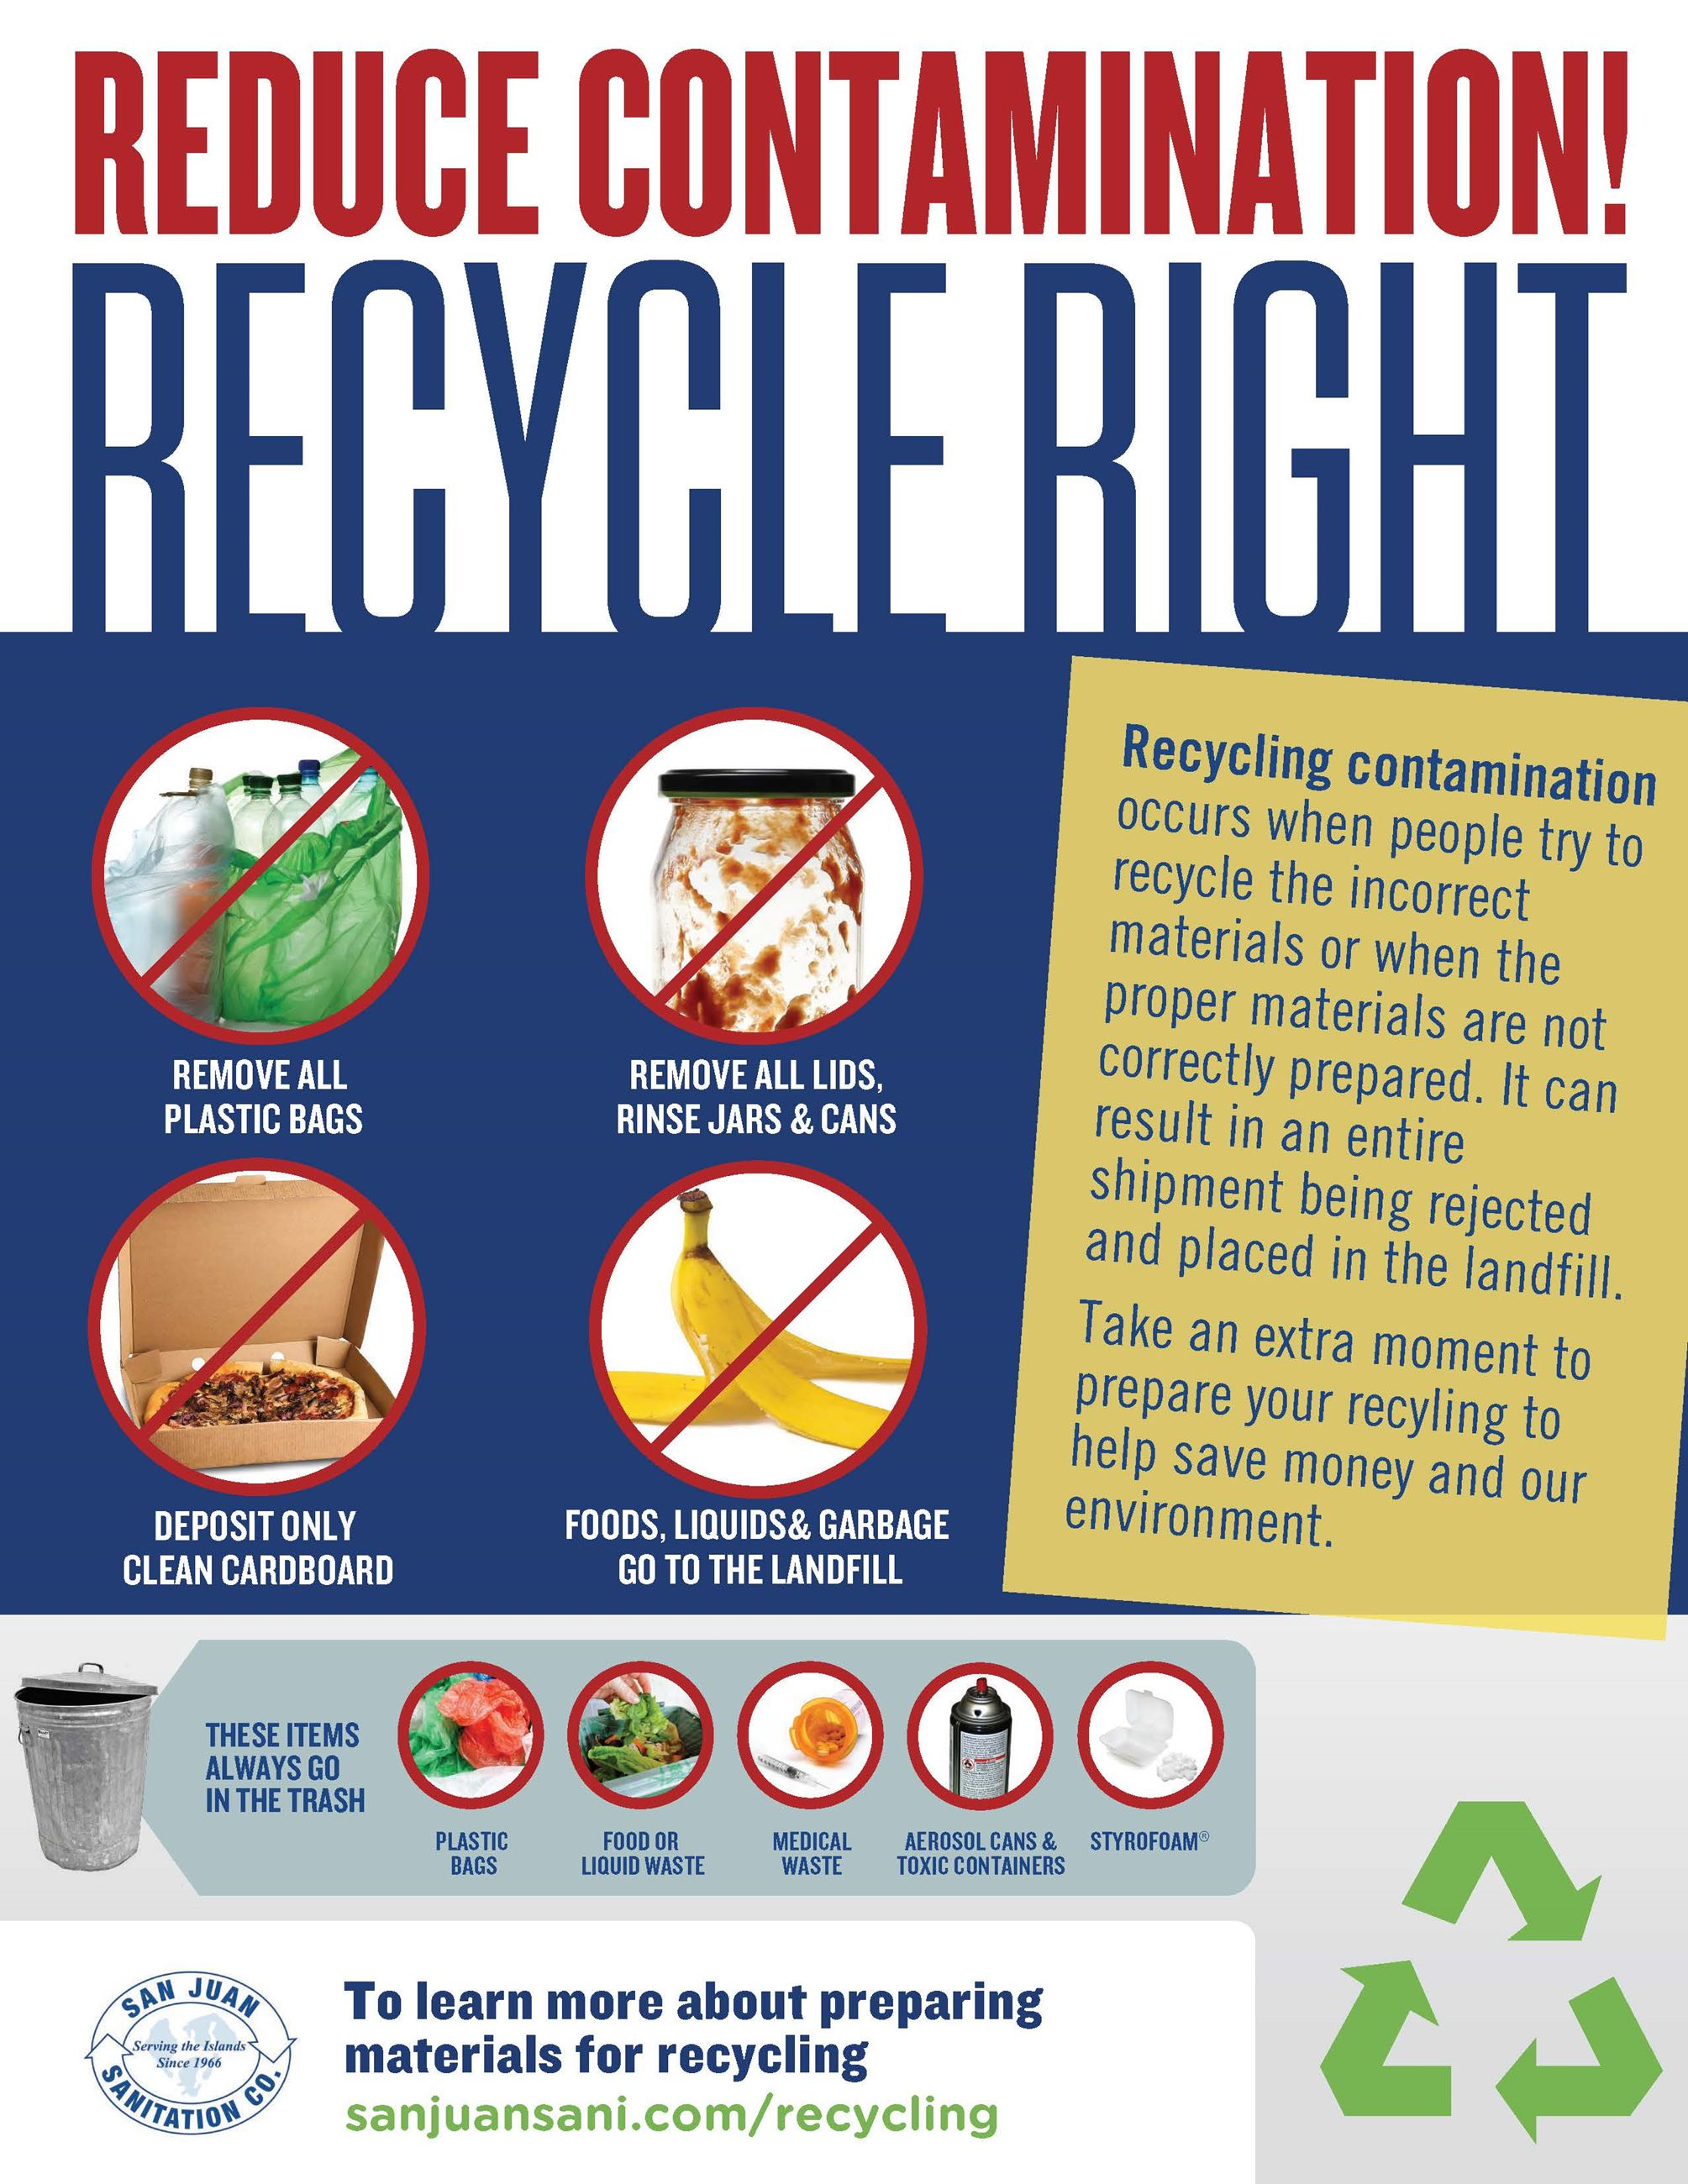 SJS_mailer insert flier - recycle right_FINAL_Page_1